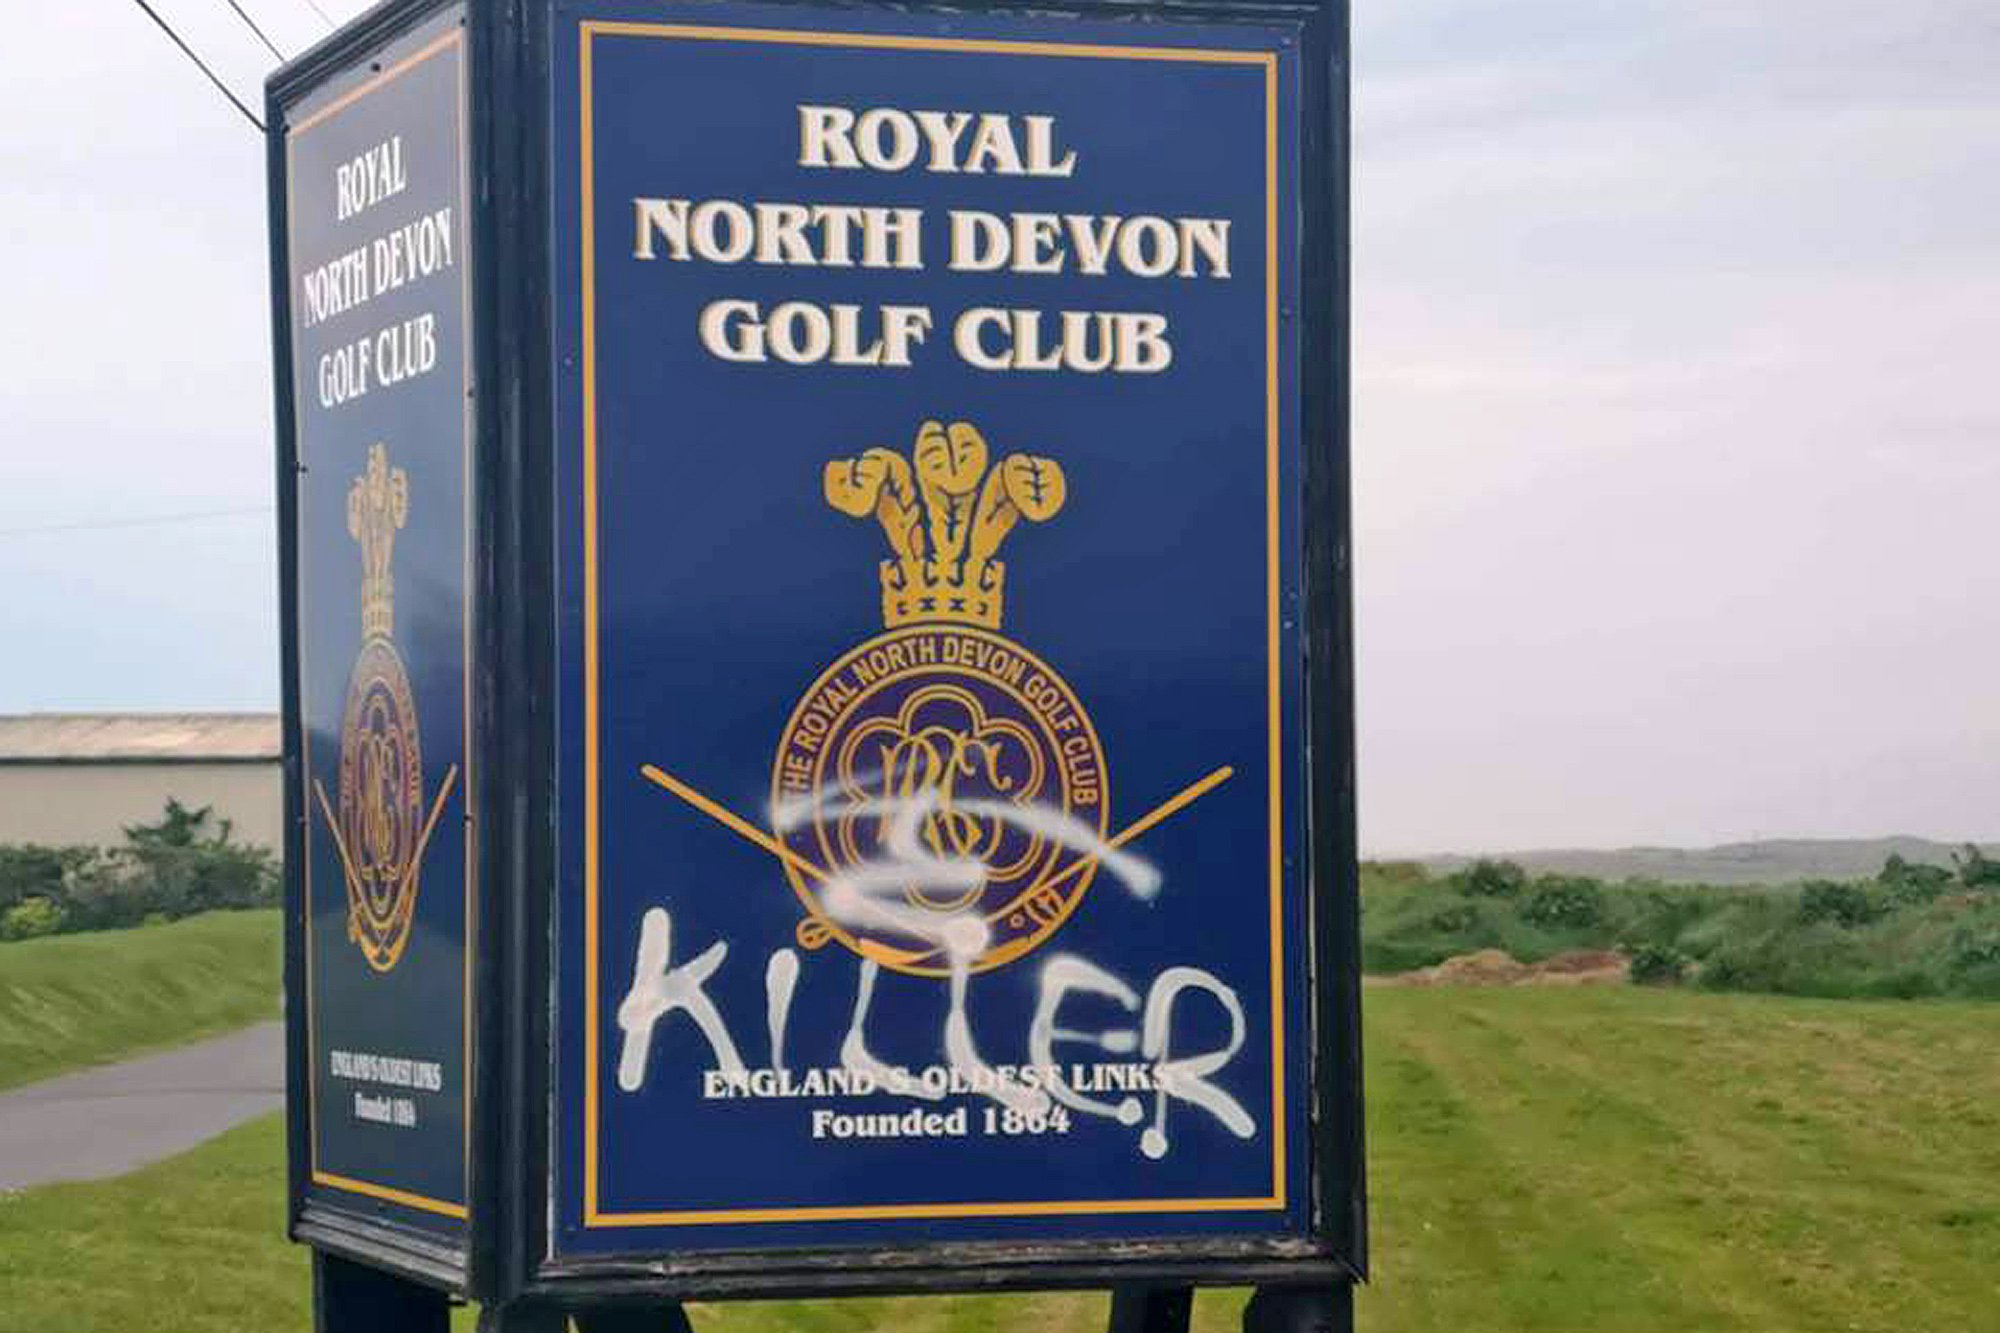 """PIC: ROYAL NORTH DEVON GOLF CLUB/APEX 24/04/2019 England's oldest golf club has been vandalised by animal activists. Pictures of piles of rubble dumped on what was believed to be a badger sett at the Royal North Devon Golf course were posted to Facebook. Dee Owen, who posted the pictures, alleged the club had illegally blocked the entrances to a badger's sett on their land at Westward Ho! near Bideford. But the club have claimed this was not the case - and have suffered vandalism as a result of the """"incorrect claims"""". Dee Owen said the RSPCA and police had been contacted about the incident. And in an update to her original post, she added: """"It would appear the club have blocked one recently used entrance and that the badgers may have moved out and the club are trying to prevent their return."""" But the Royal North Devon Golf Club took to Facebook this morning to rebut the claims. A spokesman said: """"Royal North Devon is a golf club which prides itself on being part of an area of outstanding natural beauty, and at the sheer variety and vibrancy of wildlife on and around our course. """"On the evening of 22nd April the club was victim to a number of acts of vandalism, prompted by incorrect claims that the club had caused damage to a badger sett. """"Our green staff are aware of where the key wildlife habitats are on our course, and always avoid causing any damage or disruption to these areas. """"It is a shame that in this instance there were acts of unnecessary vandalism on our premises before any conversation with the concerned group could take place. """"This vandalism now become a police matter, and as such the club will not be commenting further."""" This picture shows some of the vadalism at the golf club. SEE STORY BY APEX NEWS - 01392 823144 ---------------------------------------------------- APEX NEWS AND PICTURES NEWS DESK: 01392 823144 PICTURE DESK: 01392 823145"""